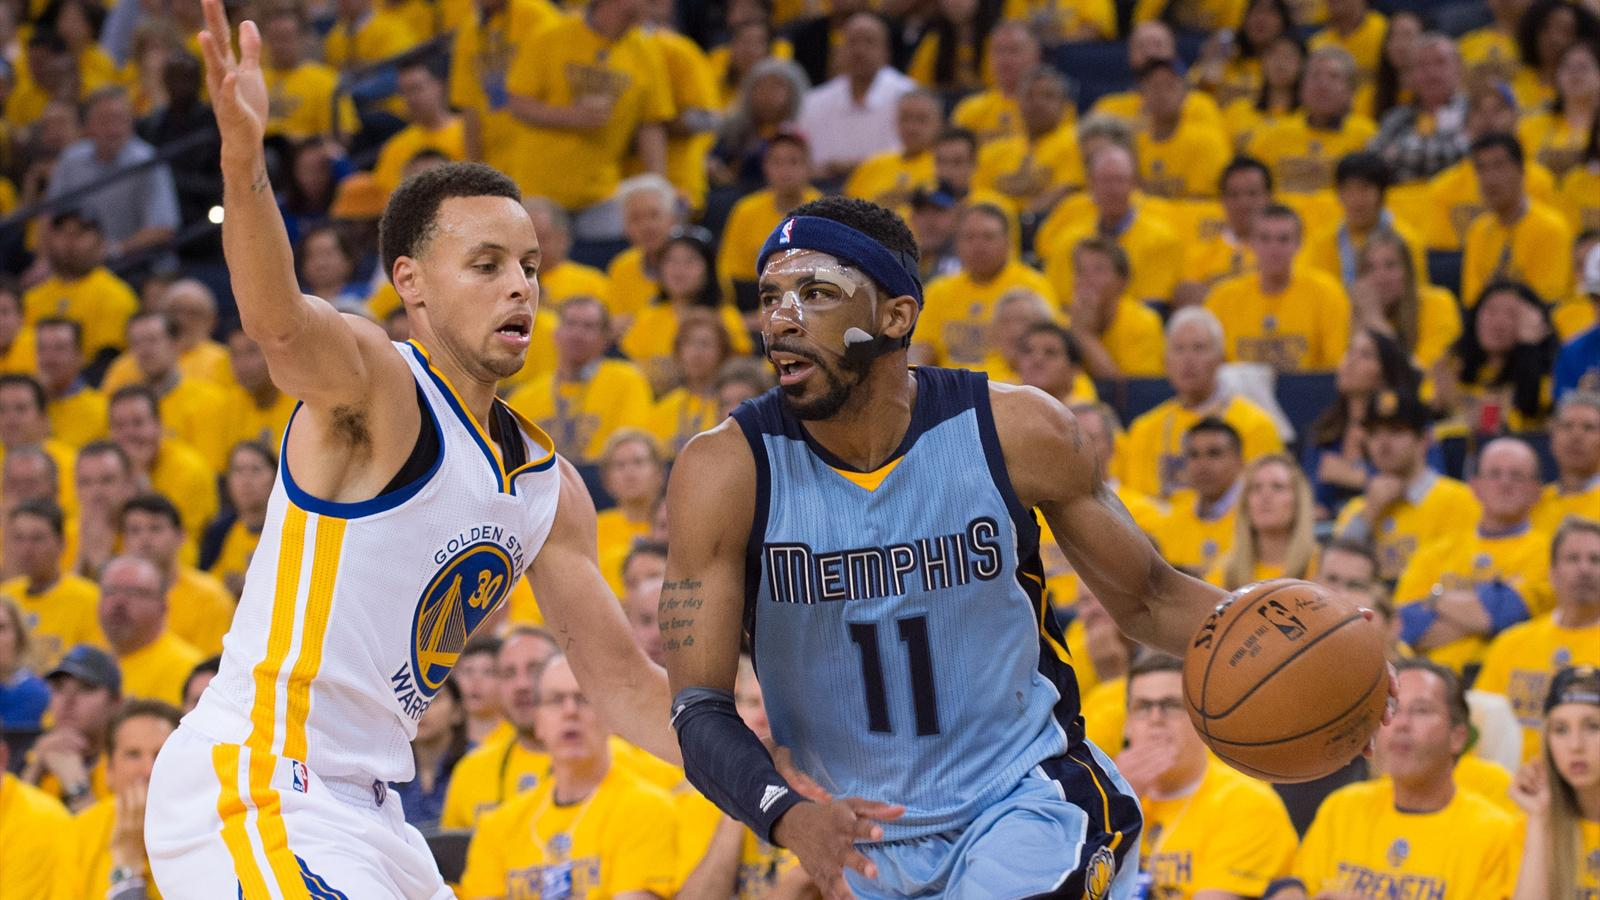 A; Memphis Grizzlies guard Mike Conley (11) dribbles the basketball against Golden State Warriors guard Stephen Curry (30) during the third quarter in game two of the second round of the NBA Playoffs at Oracle Arena (Reuters)